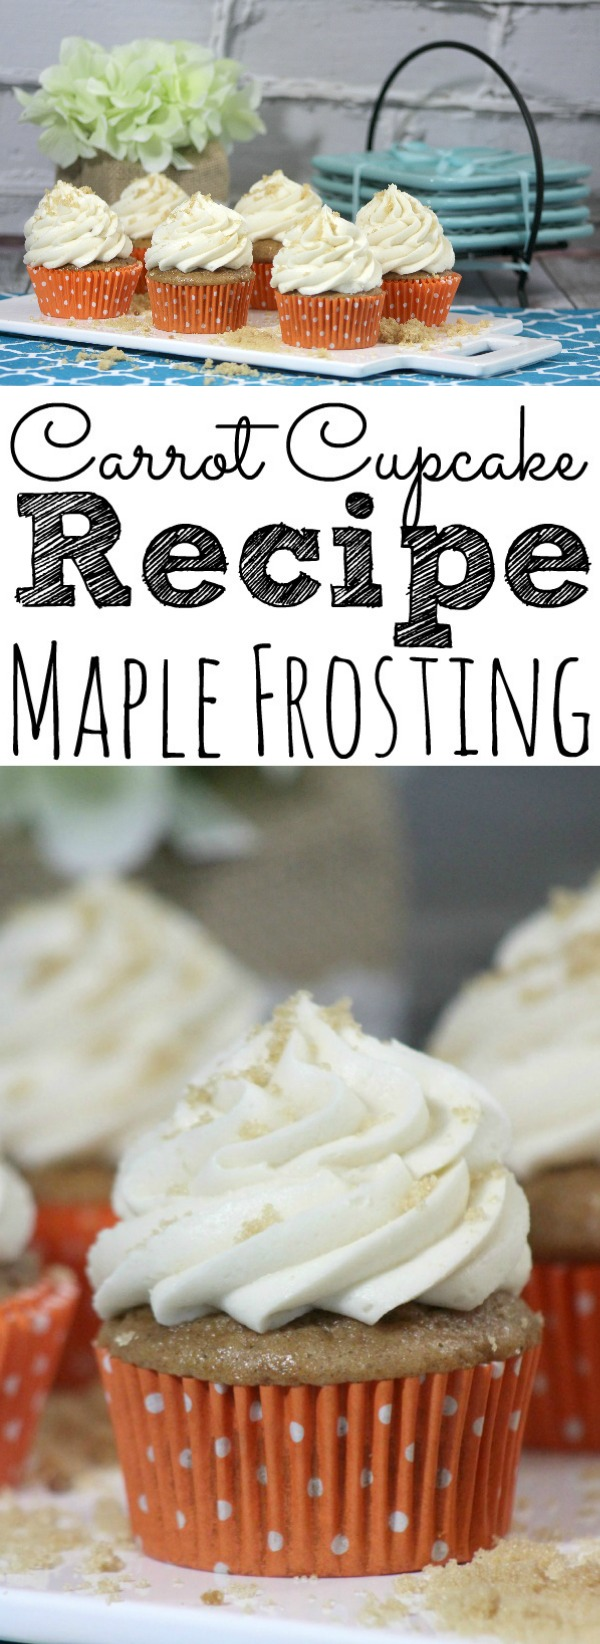 Classic Carrot Cupcake with Maple Frosting